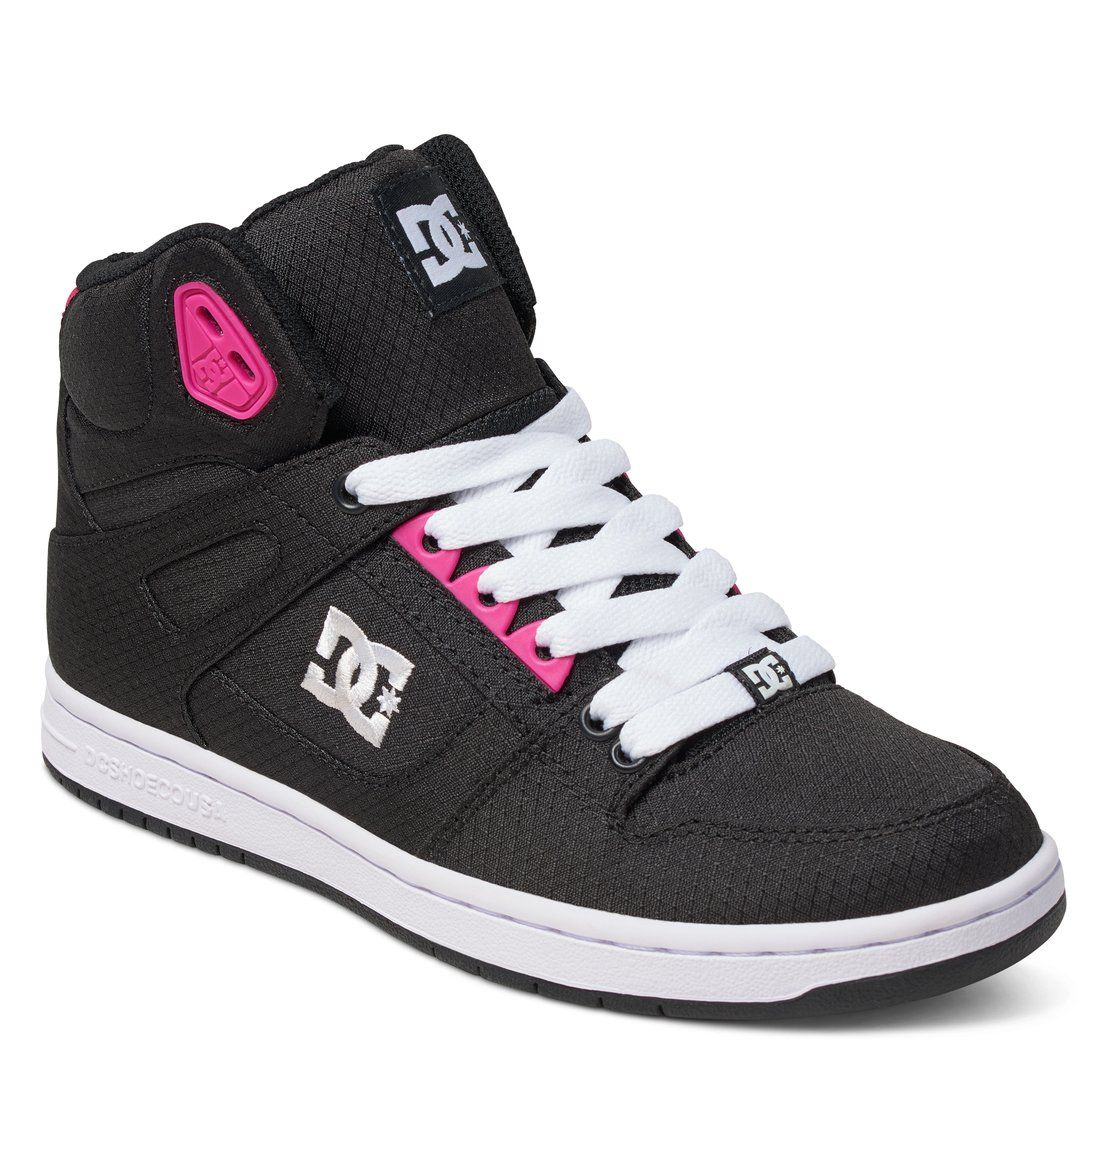 Women's Rebound TX SE High Top shoes ADJS100065 | DC Shoes